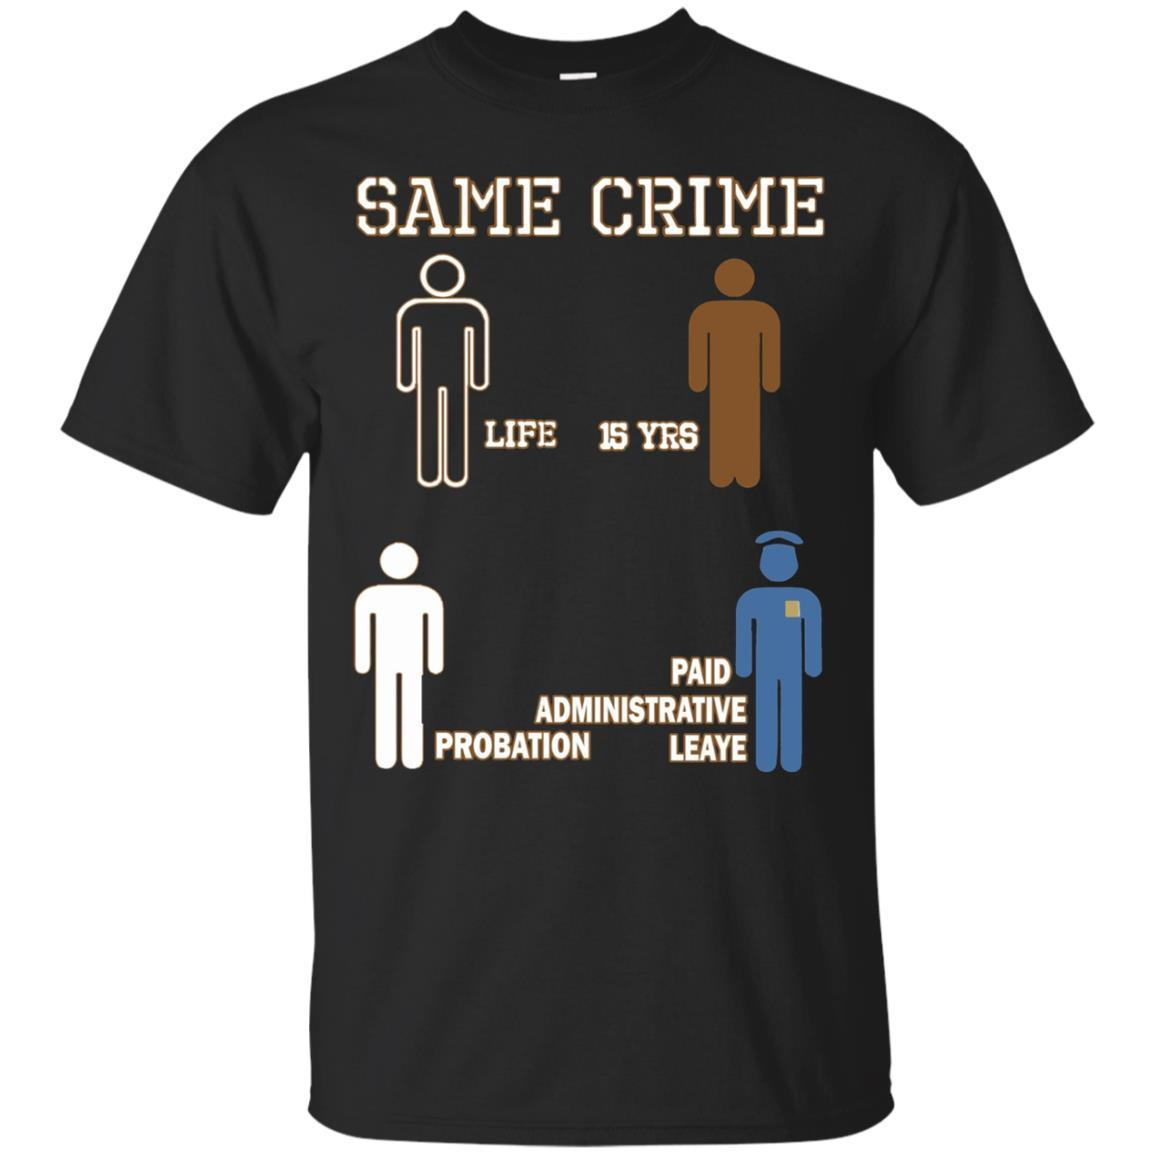 Same Crime T-Shirt Black / 5XL